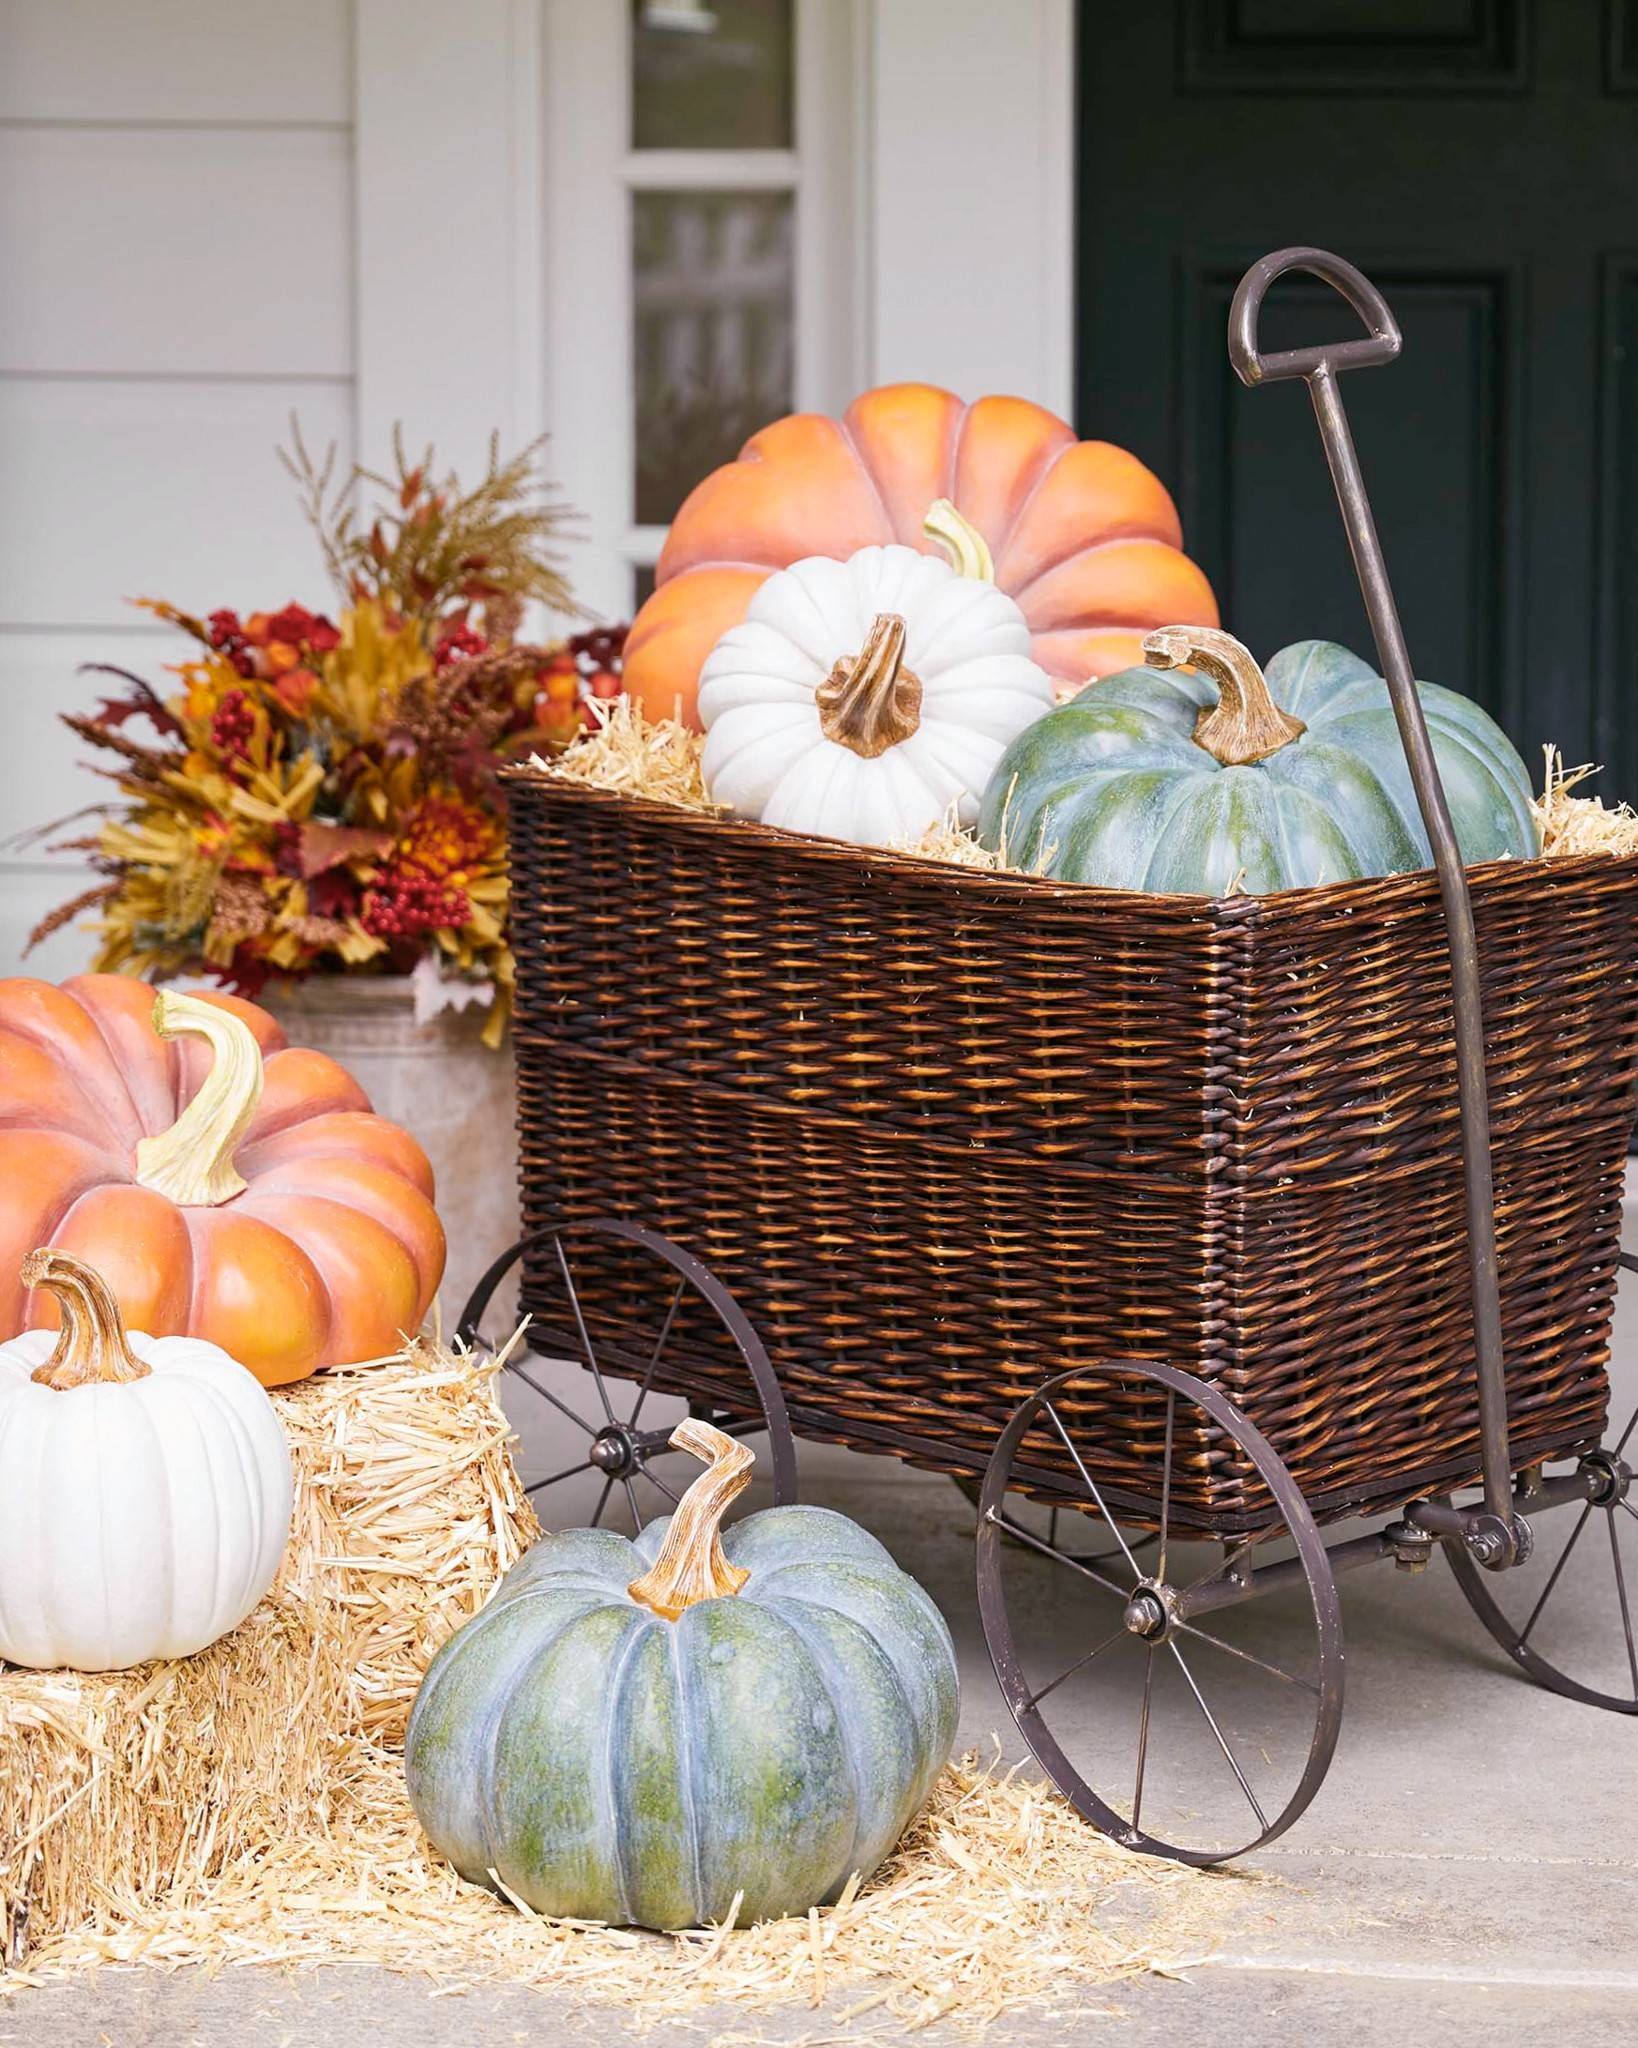 Outdoor Heirloom Pumpkins Balsam Hill Fall Outdoor Decor Fall Decorations Porch Farmhouse Fall Decor